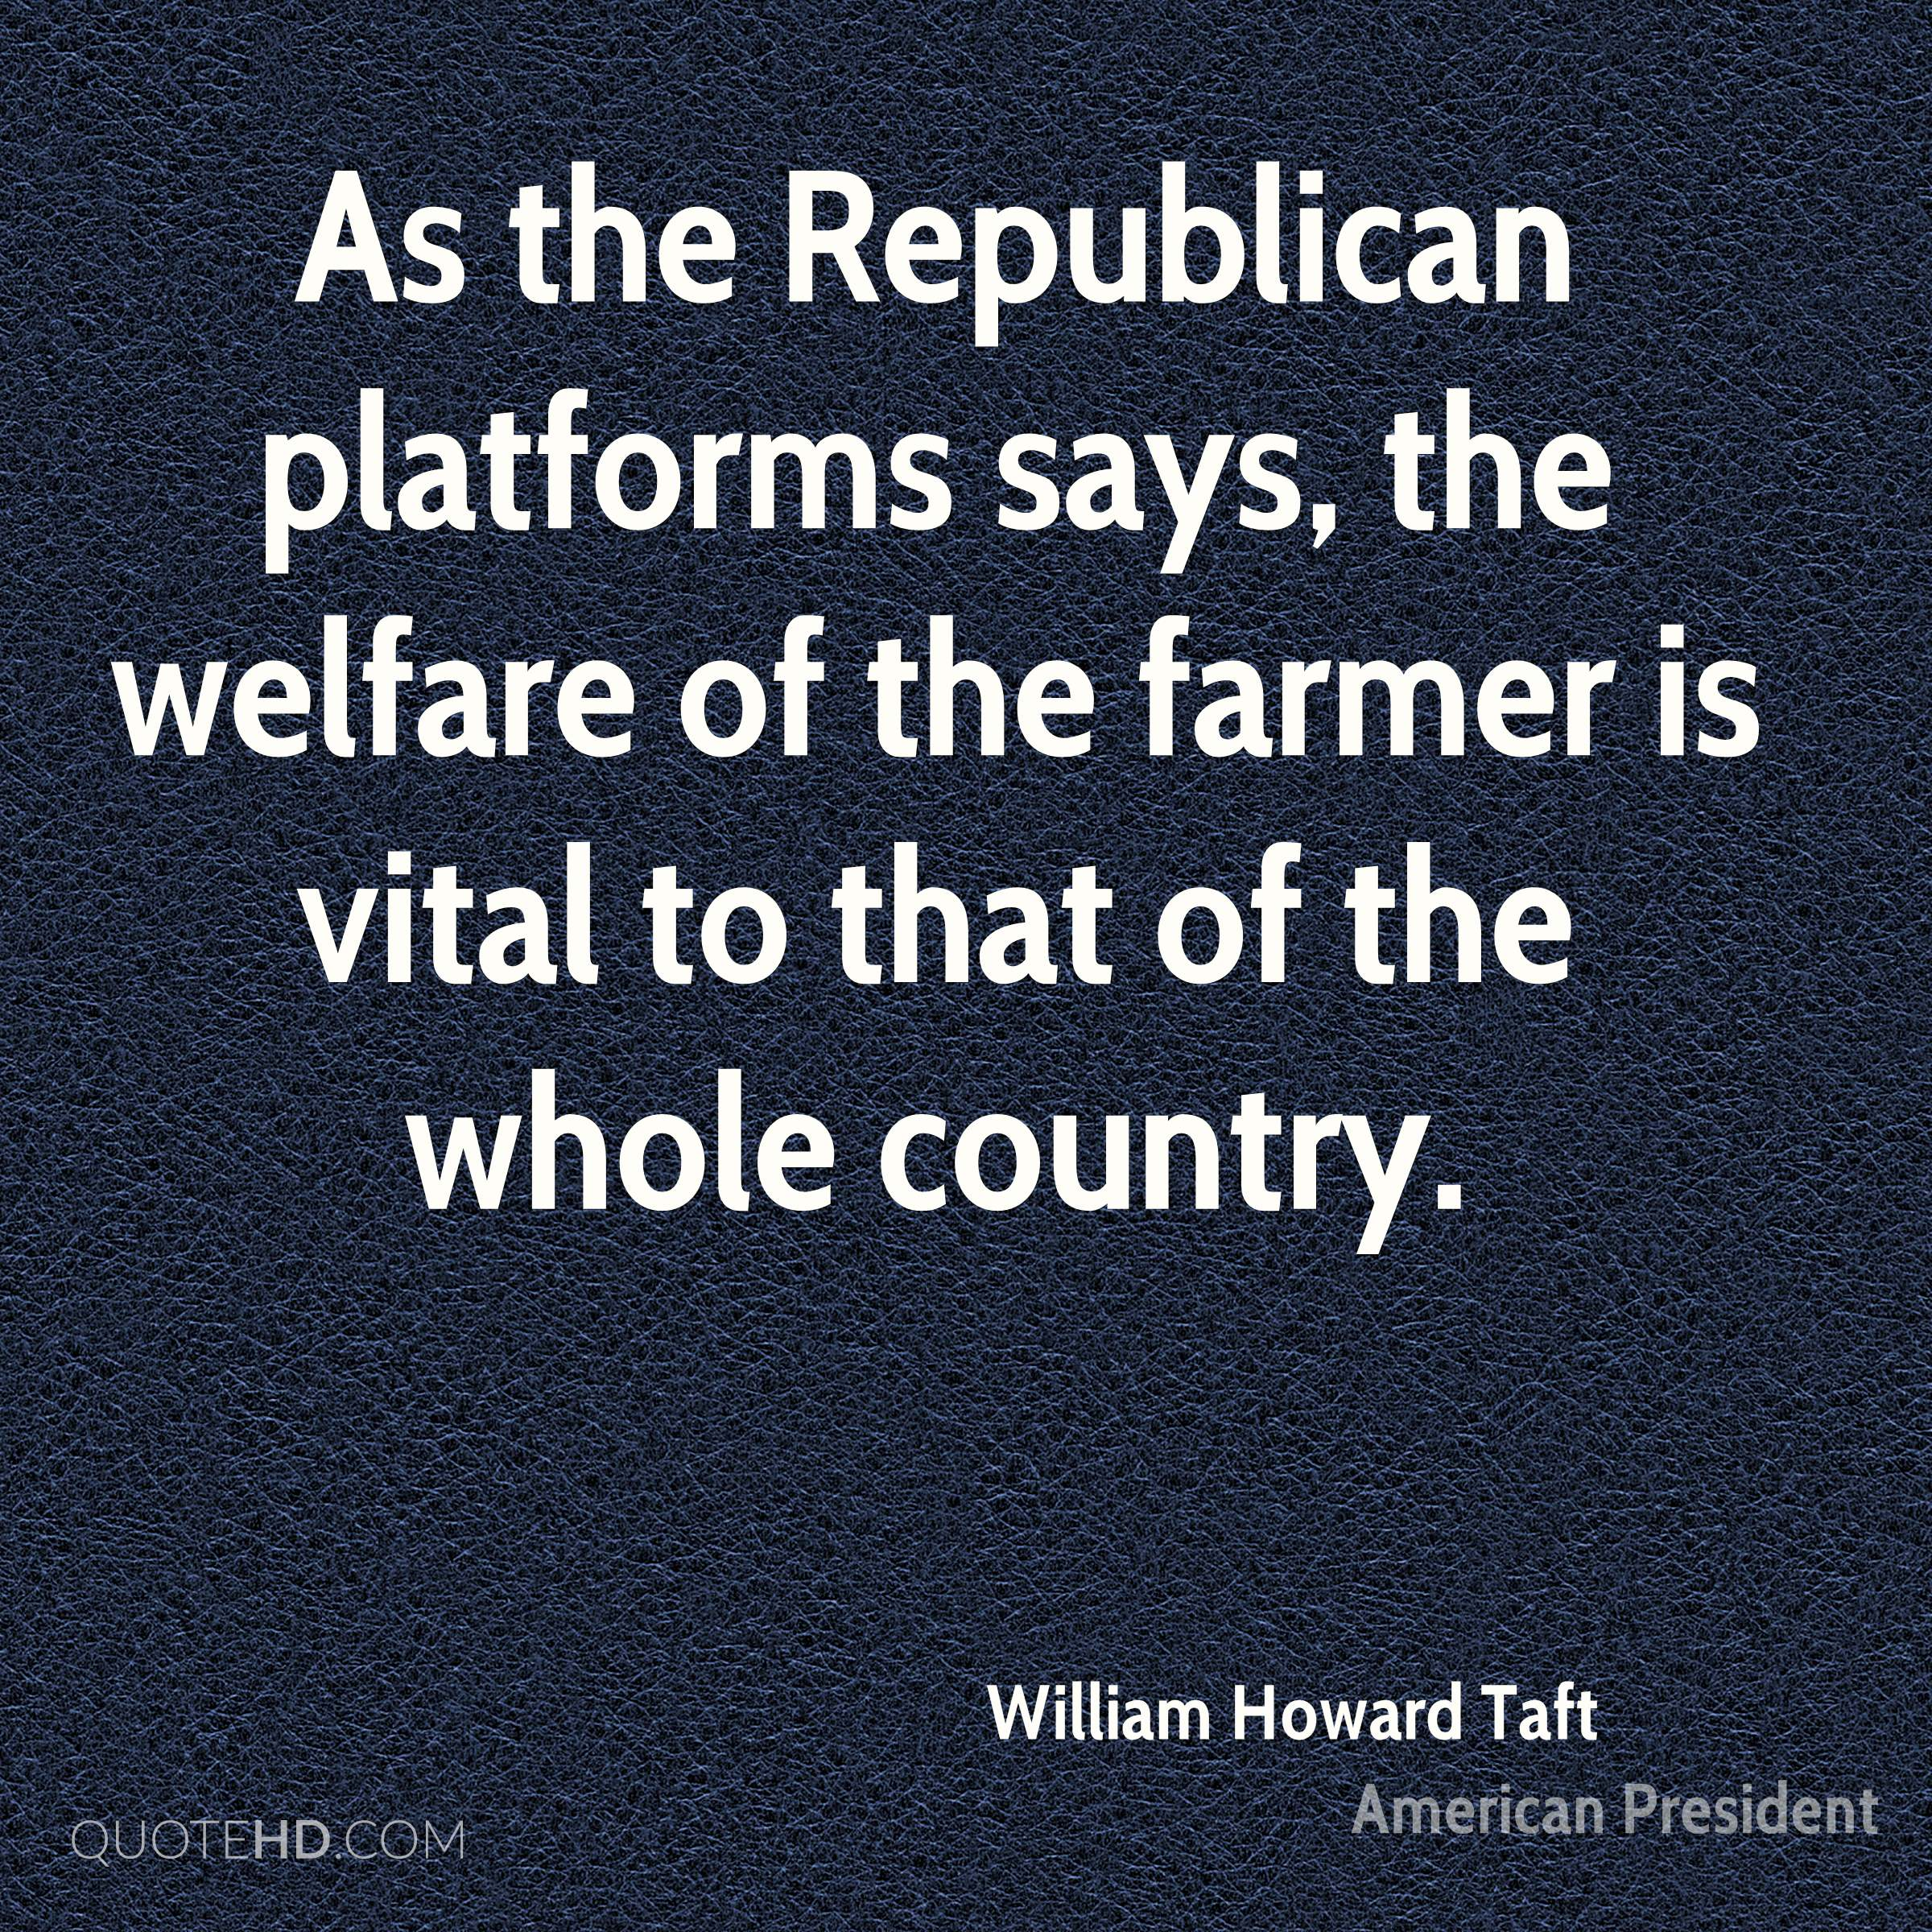 As the Republican platforms says, the welfare of the farmer is vital to that of the whole country.